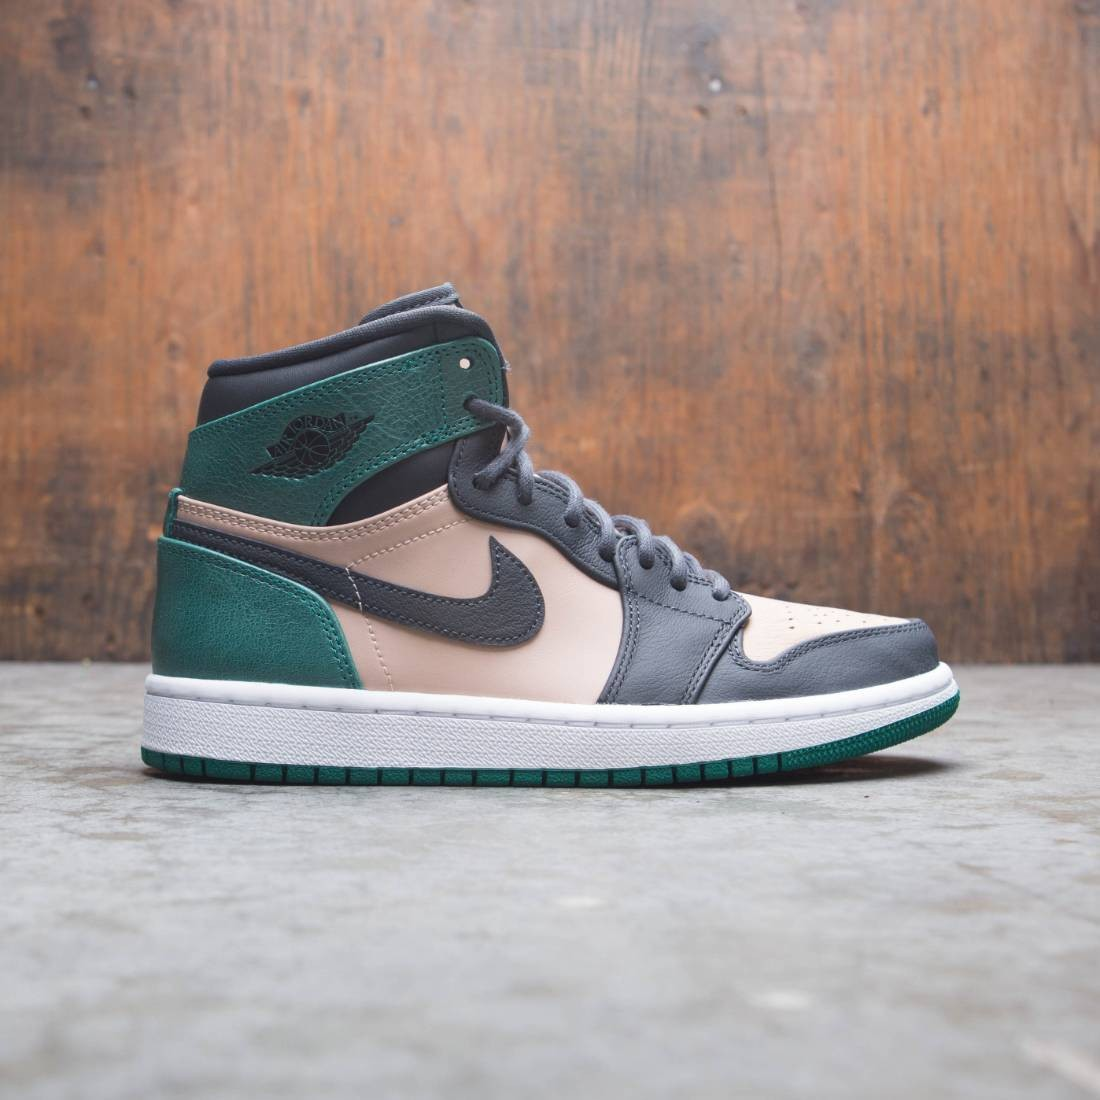 new product 2f421 a831b Air Jordan 1 Retro High Premium Women (bio beige / anthracite-mystic green)